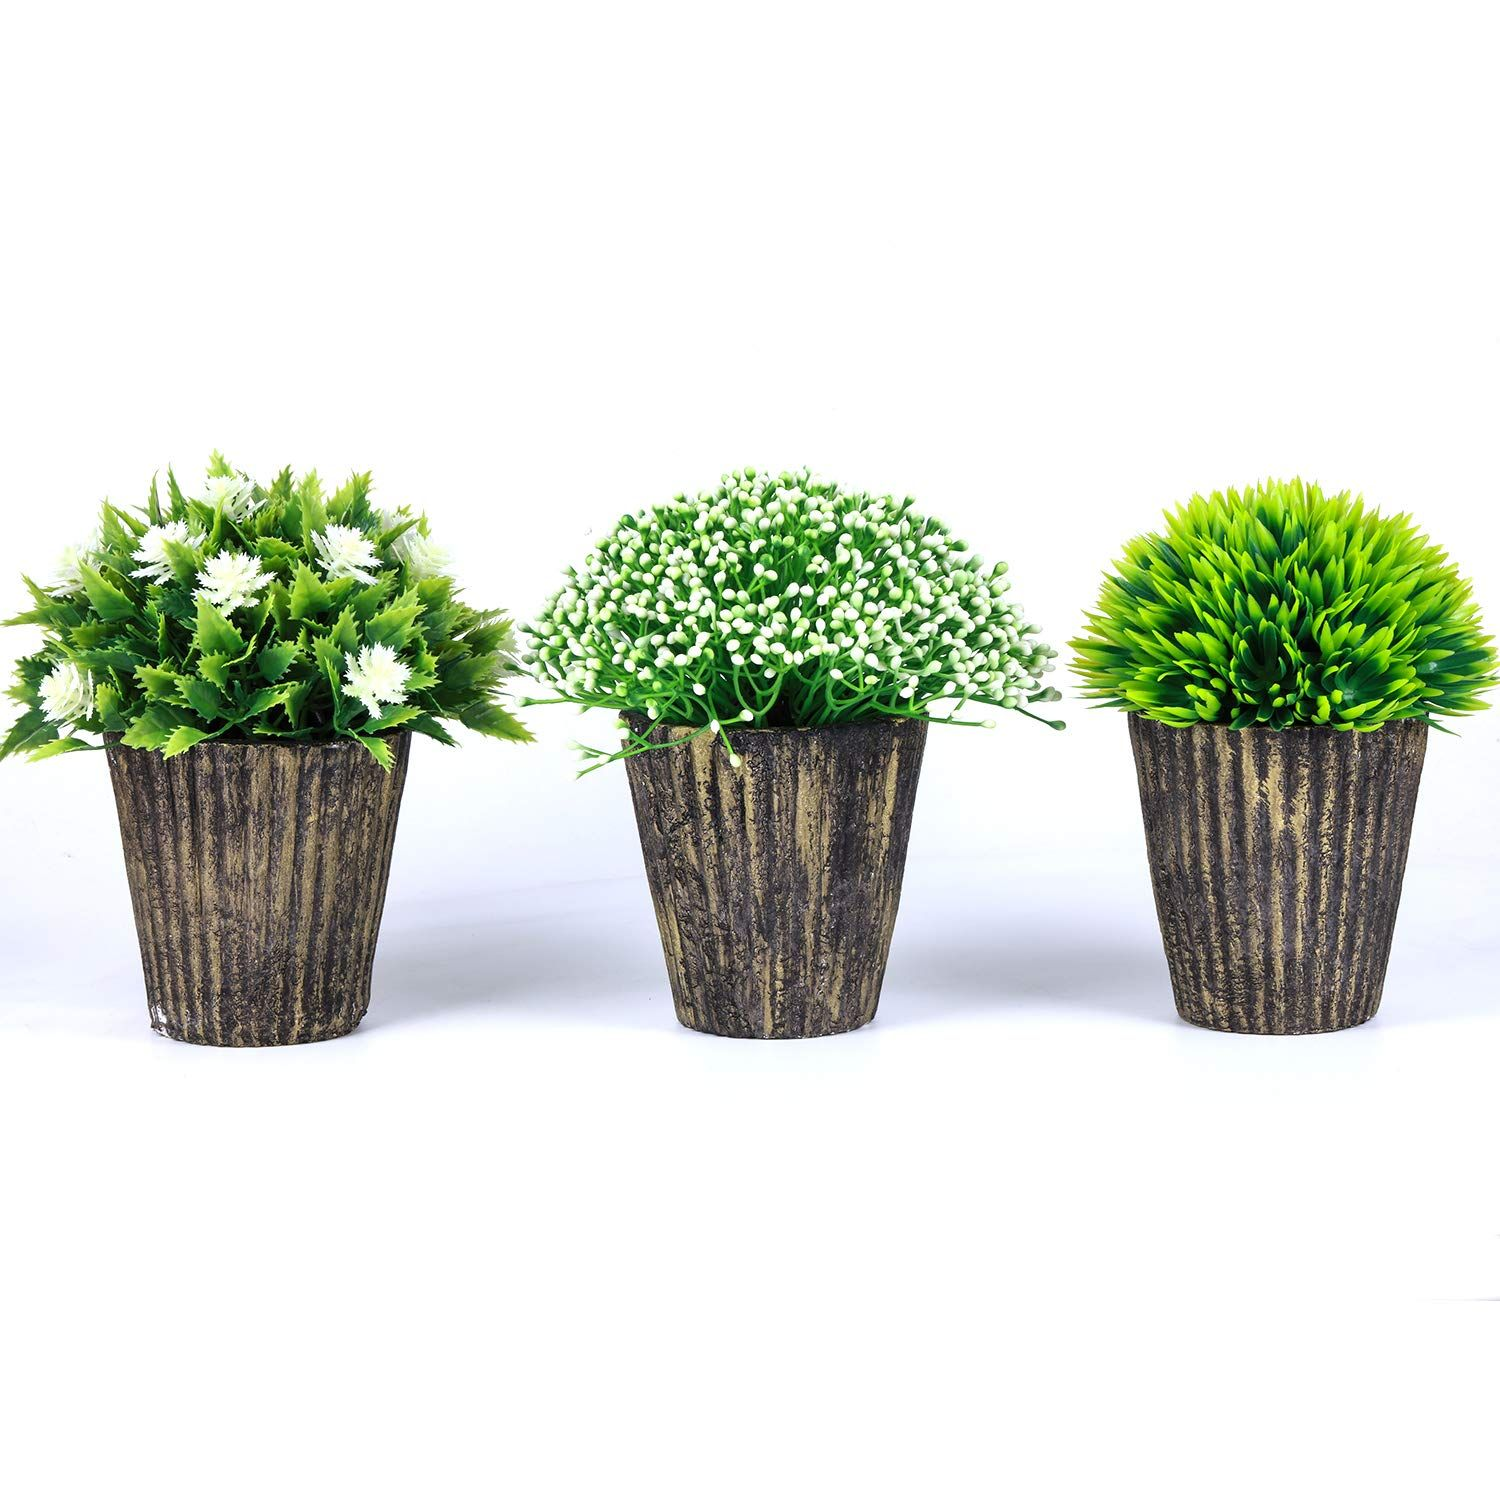 The Bloom Times Fake Plant For Bathroom Home Decor Small Artificial Faux Greenery For House Decorations Potted Pl Fake Plants Decor Bathroom Plants Fake Plants